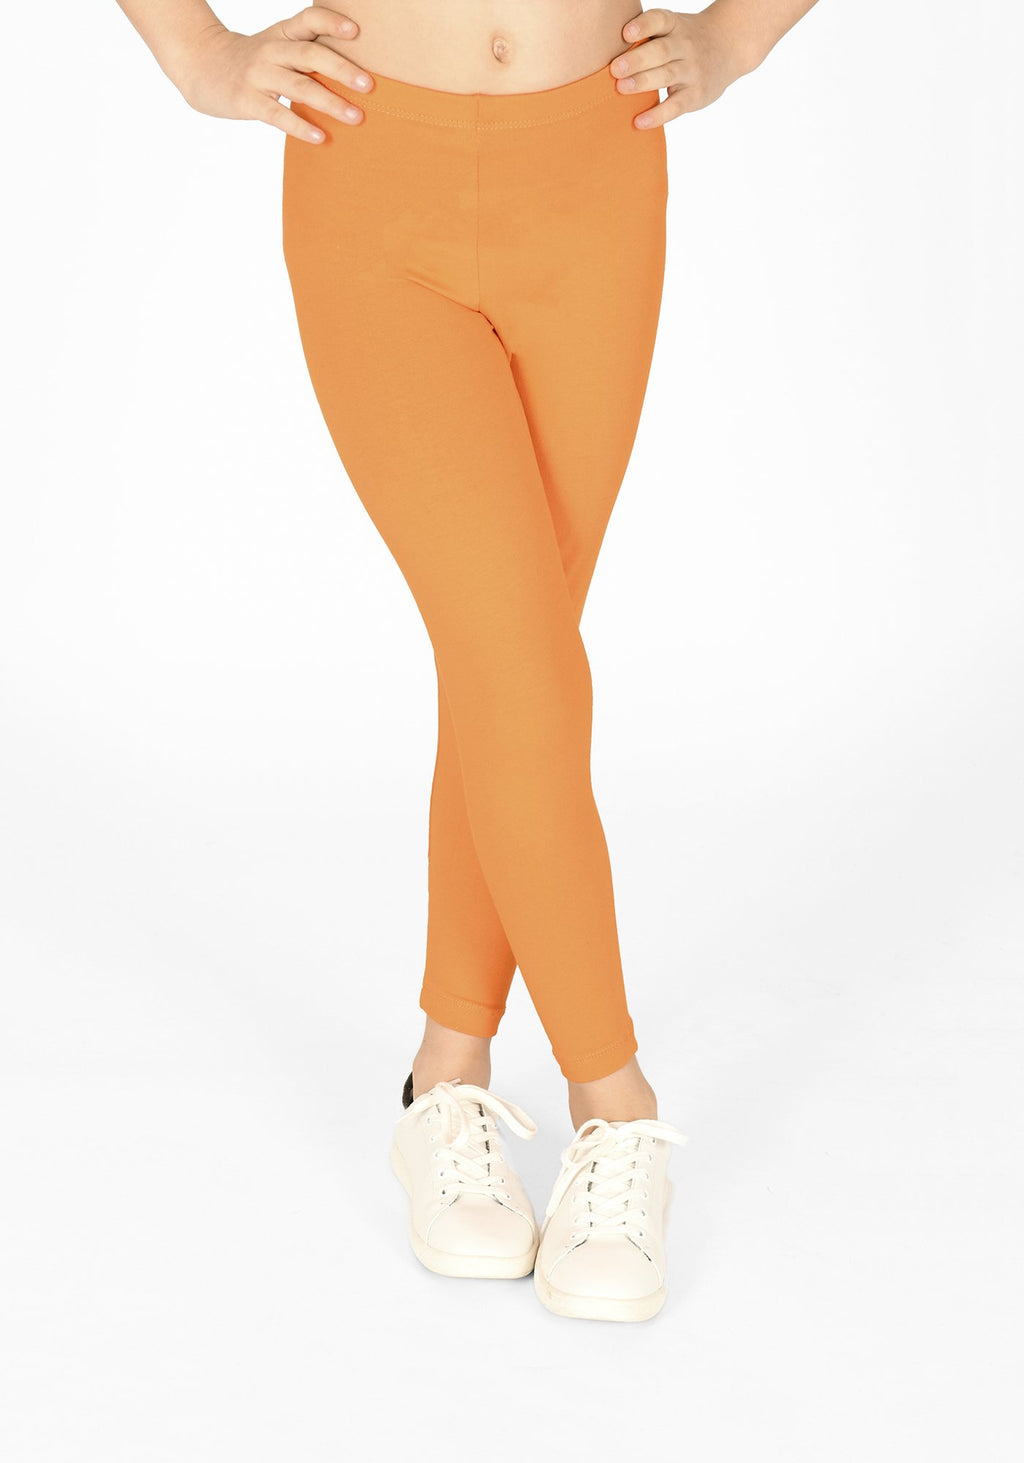 tiger orange full length childrens leggings 1